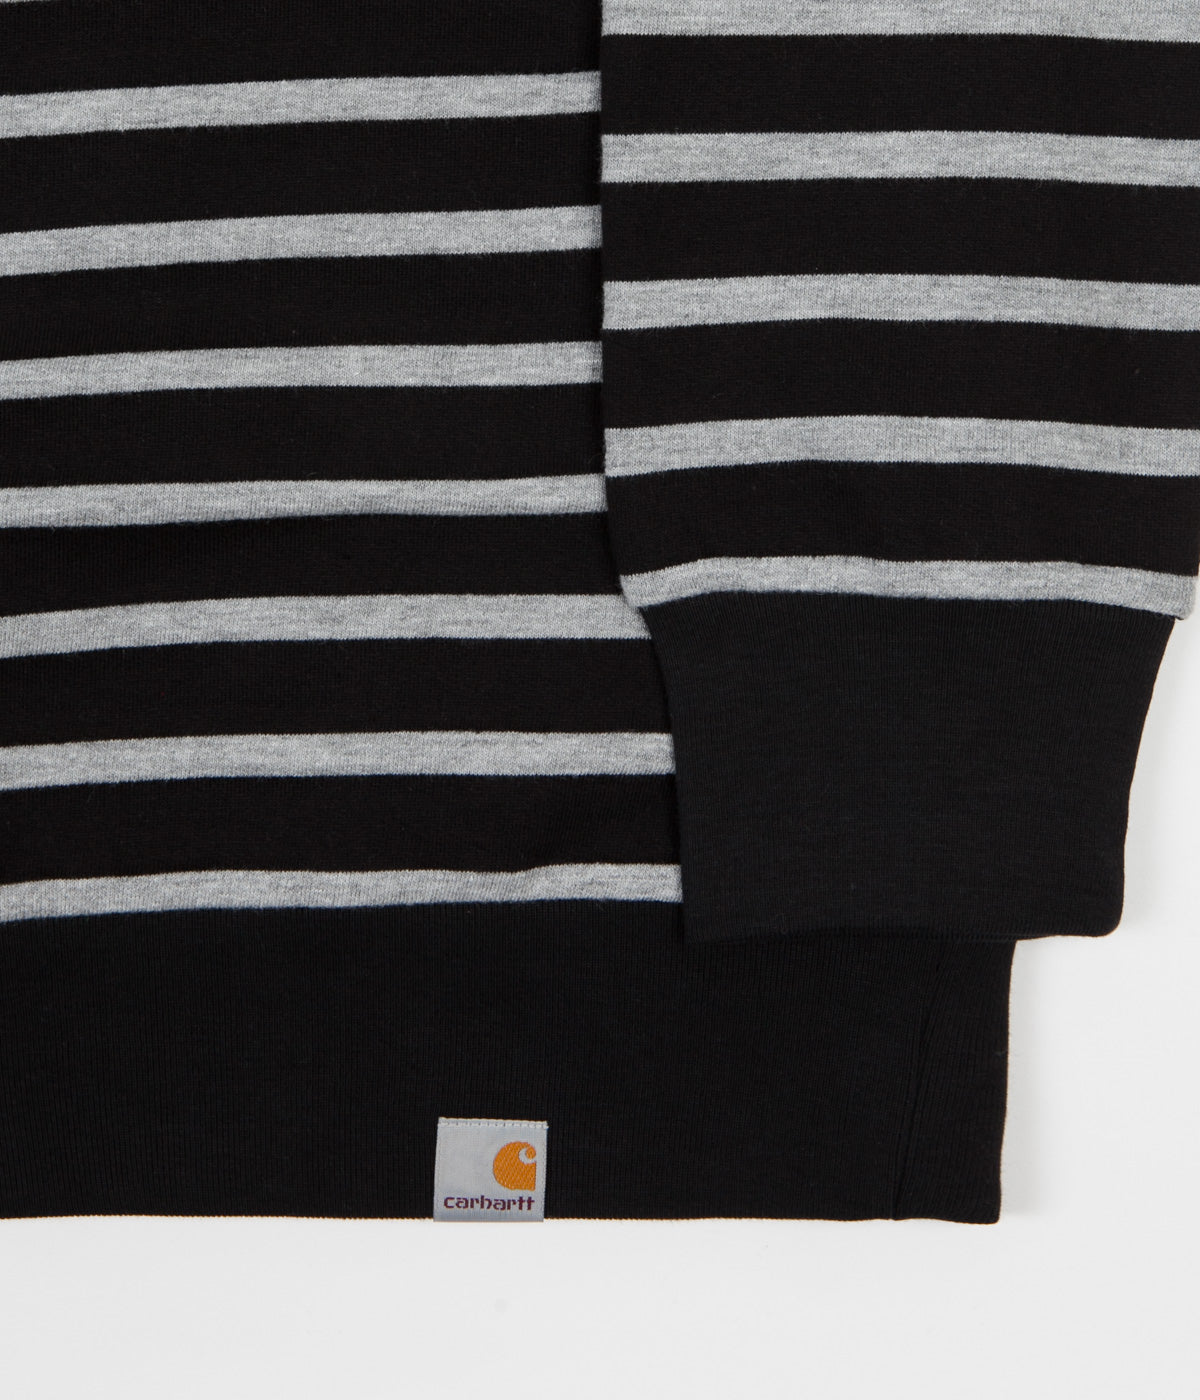 Carhartt Manson Crewneck Sweatshirt - Manson Stripe / Black / Grey Heather